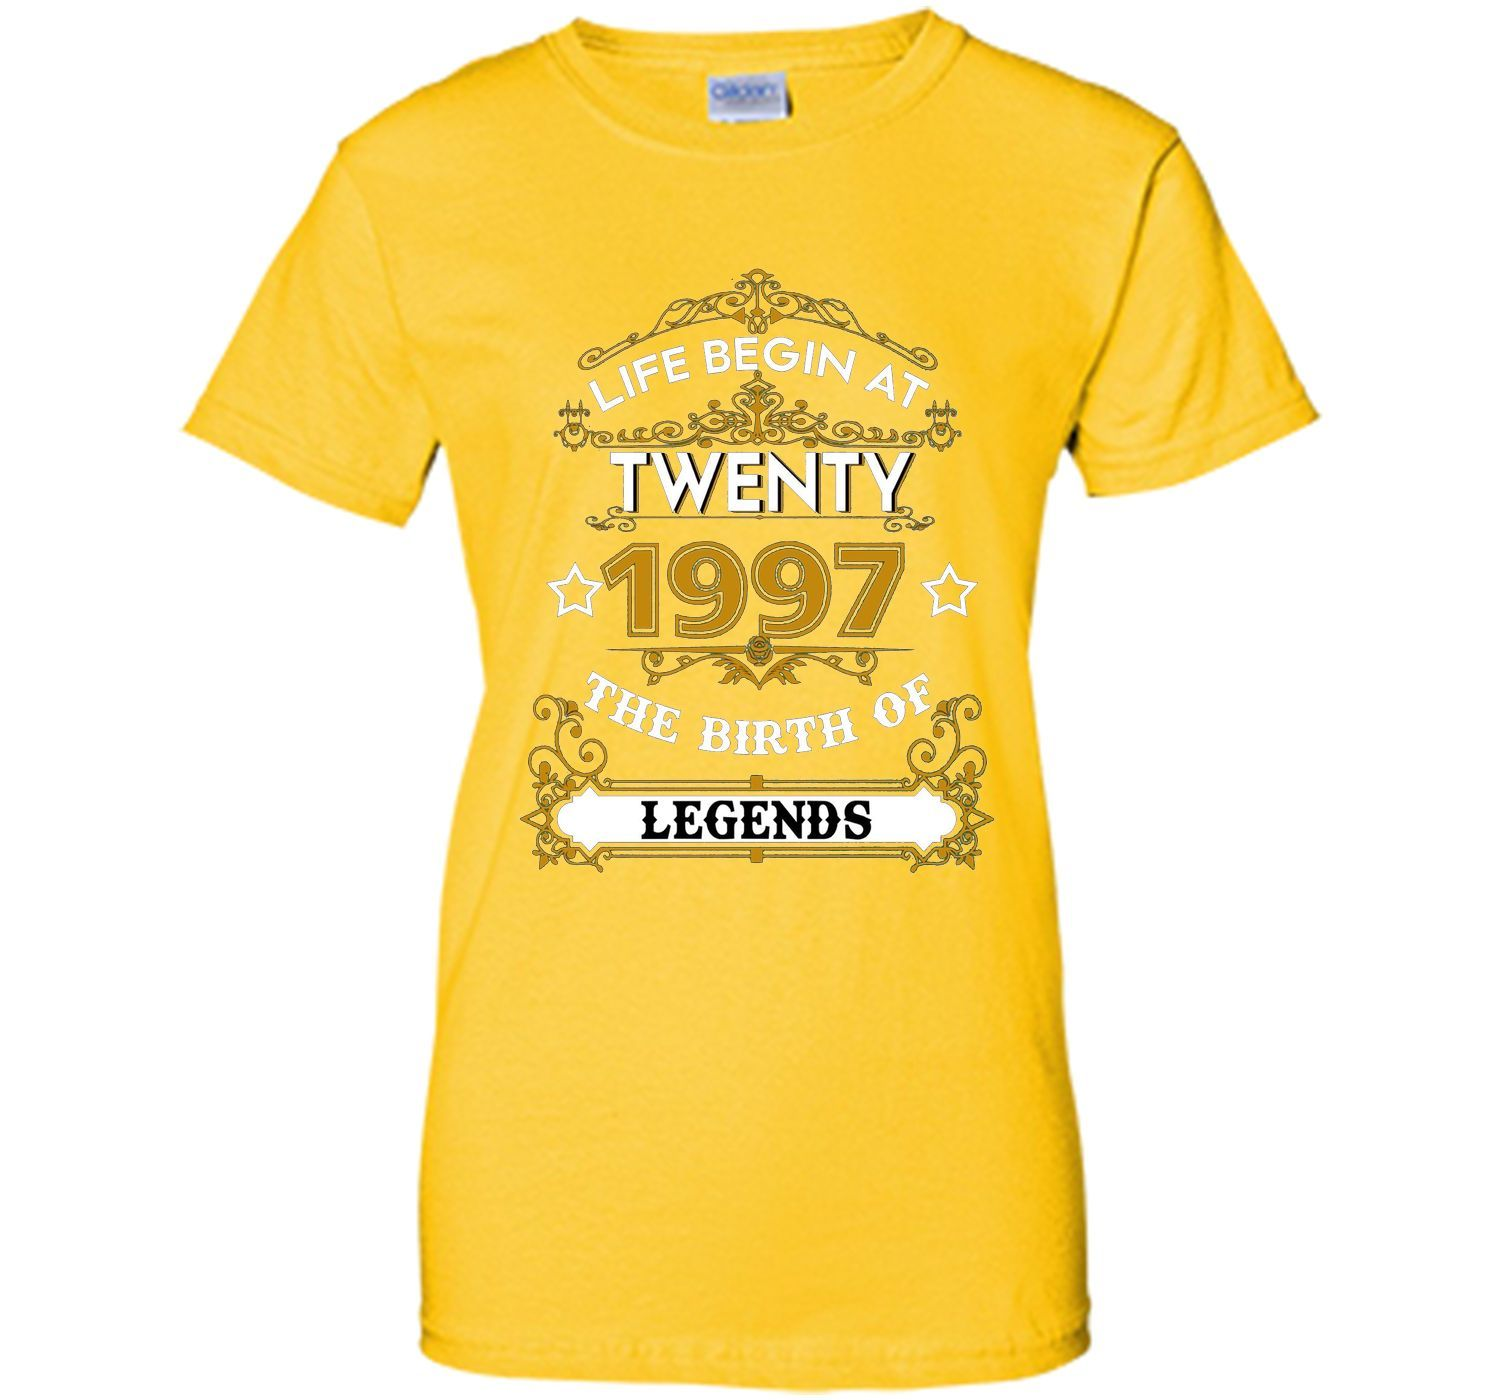 1997 The Birth Of Legends - Funny Tshirt For Man/Women cool shirt